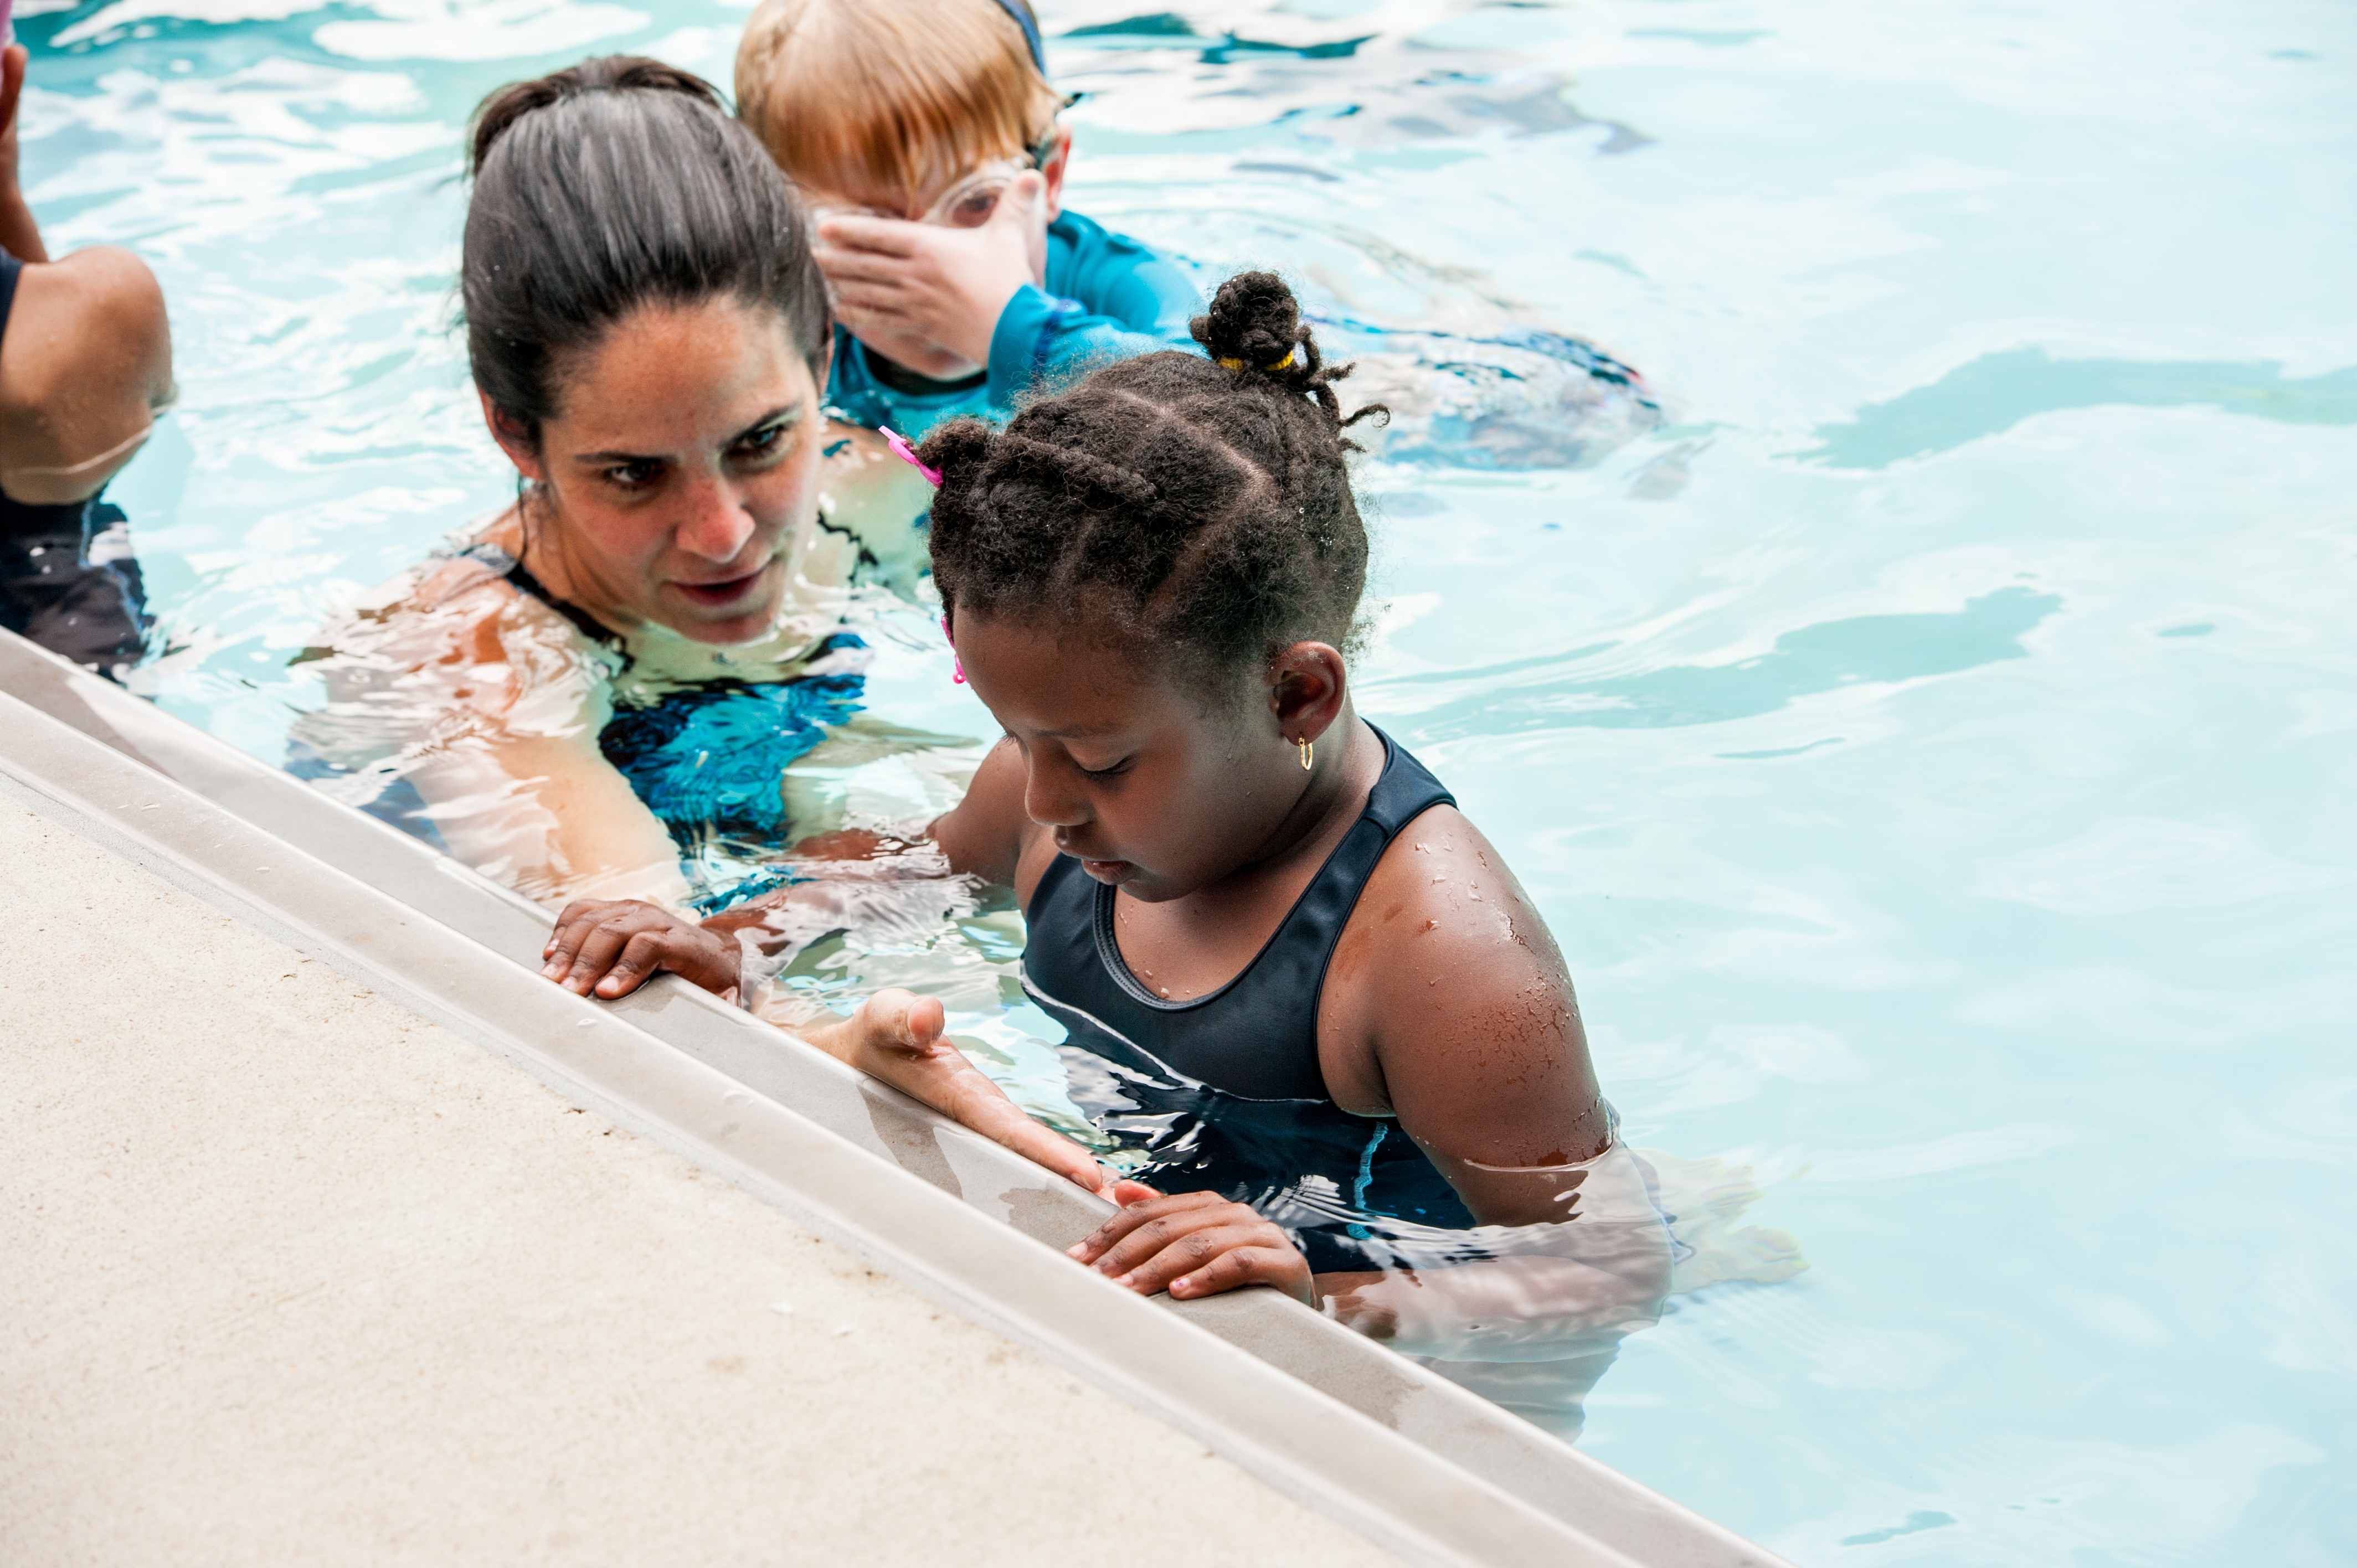 an adult woman talking to a child who is holding onto the side of the pool.